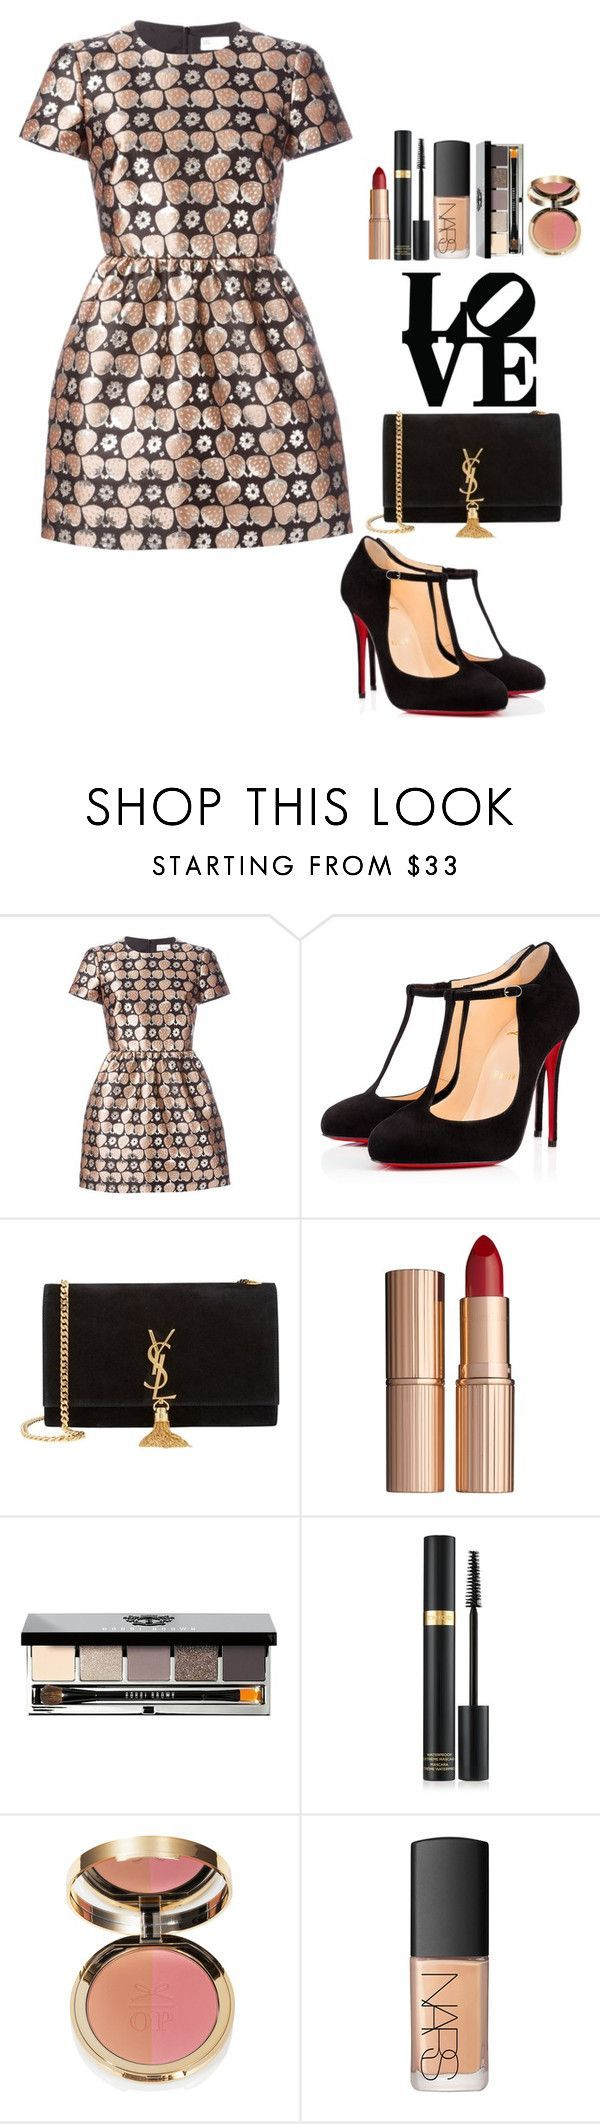 """""""#532"""" by victoria2610 ❤ liked on Polyvore featuring RED Valentino, Christian Louboutin, Yves Saint Laurent, Charlotte Tilbury, Bobbi Brown Cosmetics, NARS Cosmetics, women's clothing, women's fashion, women and female"""